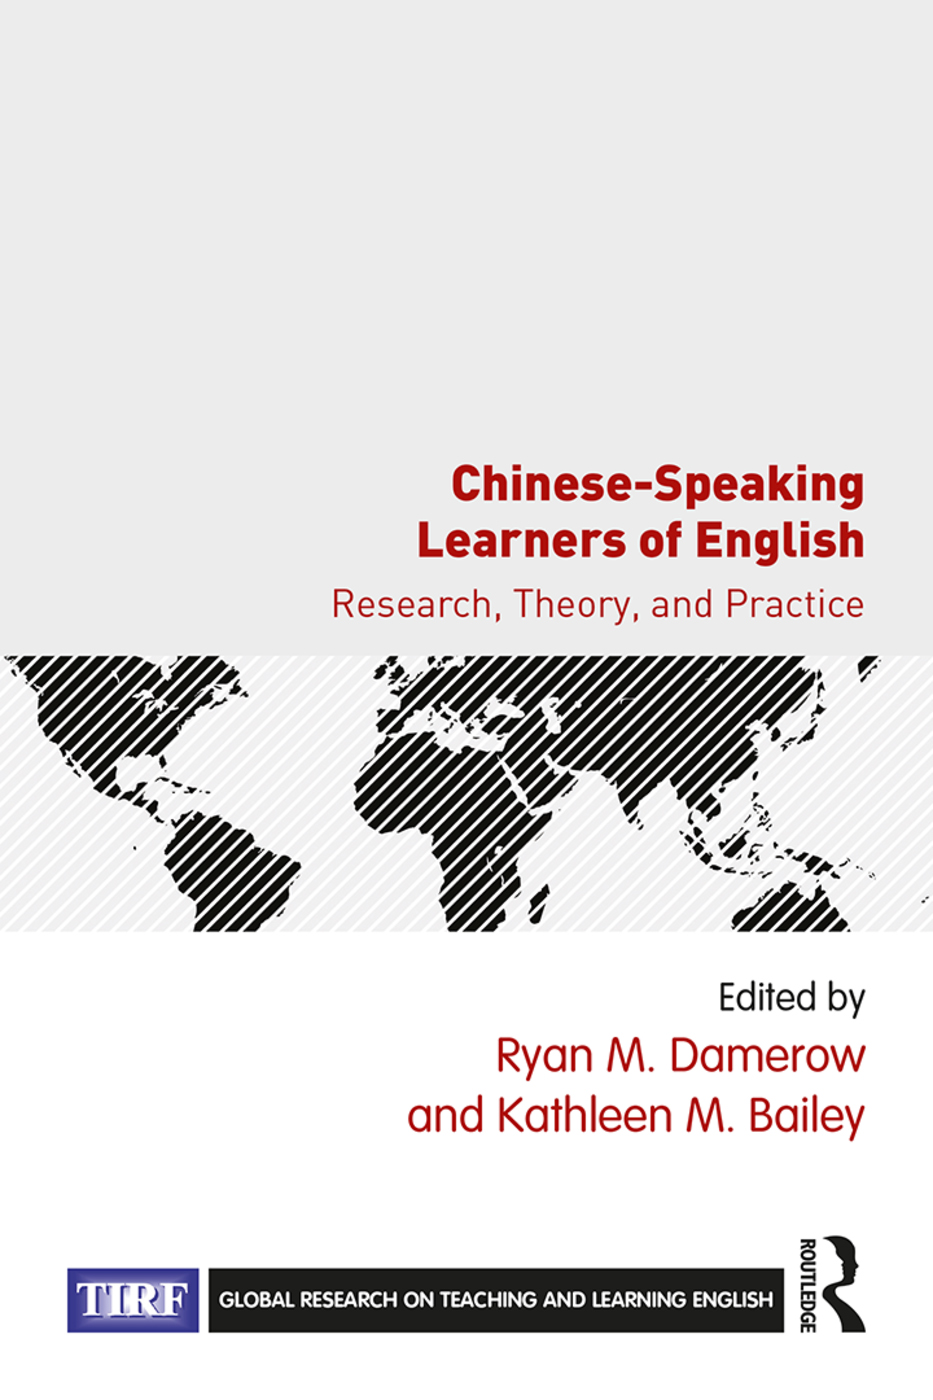 Chinese-Speaking Learners of English